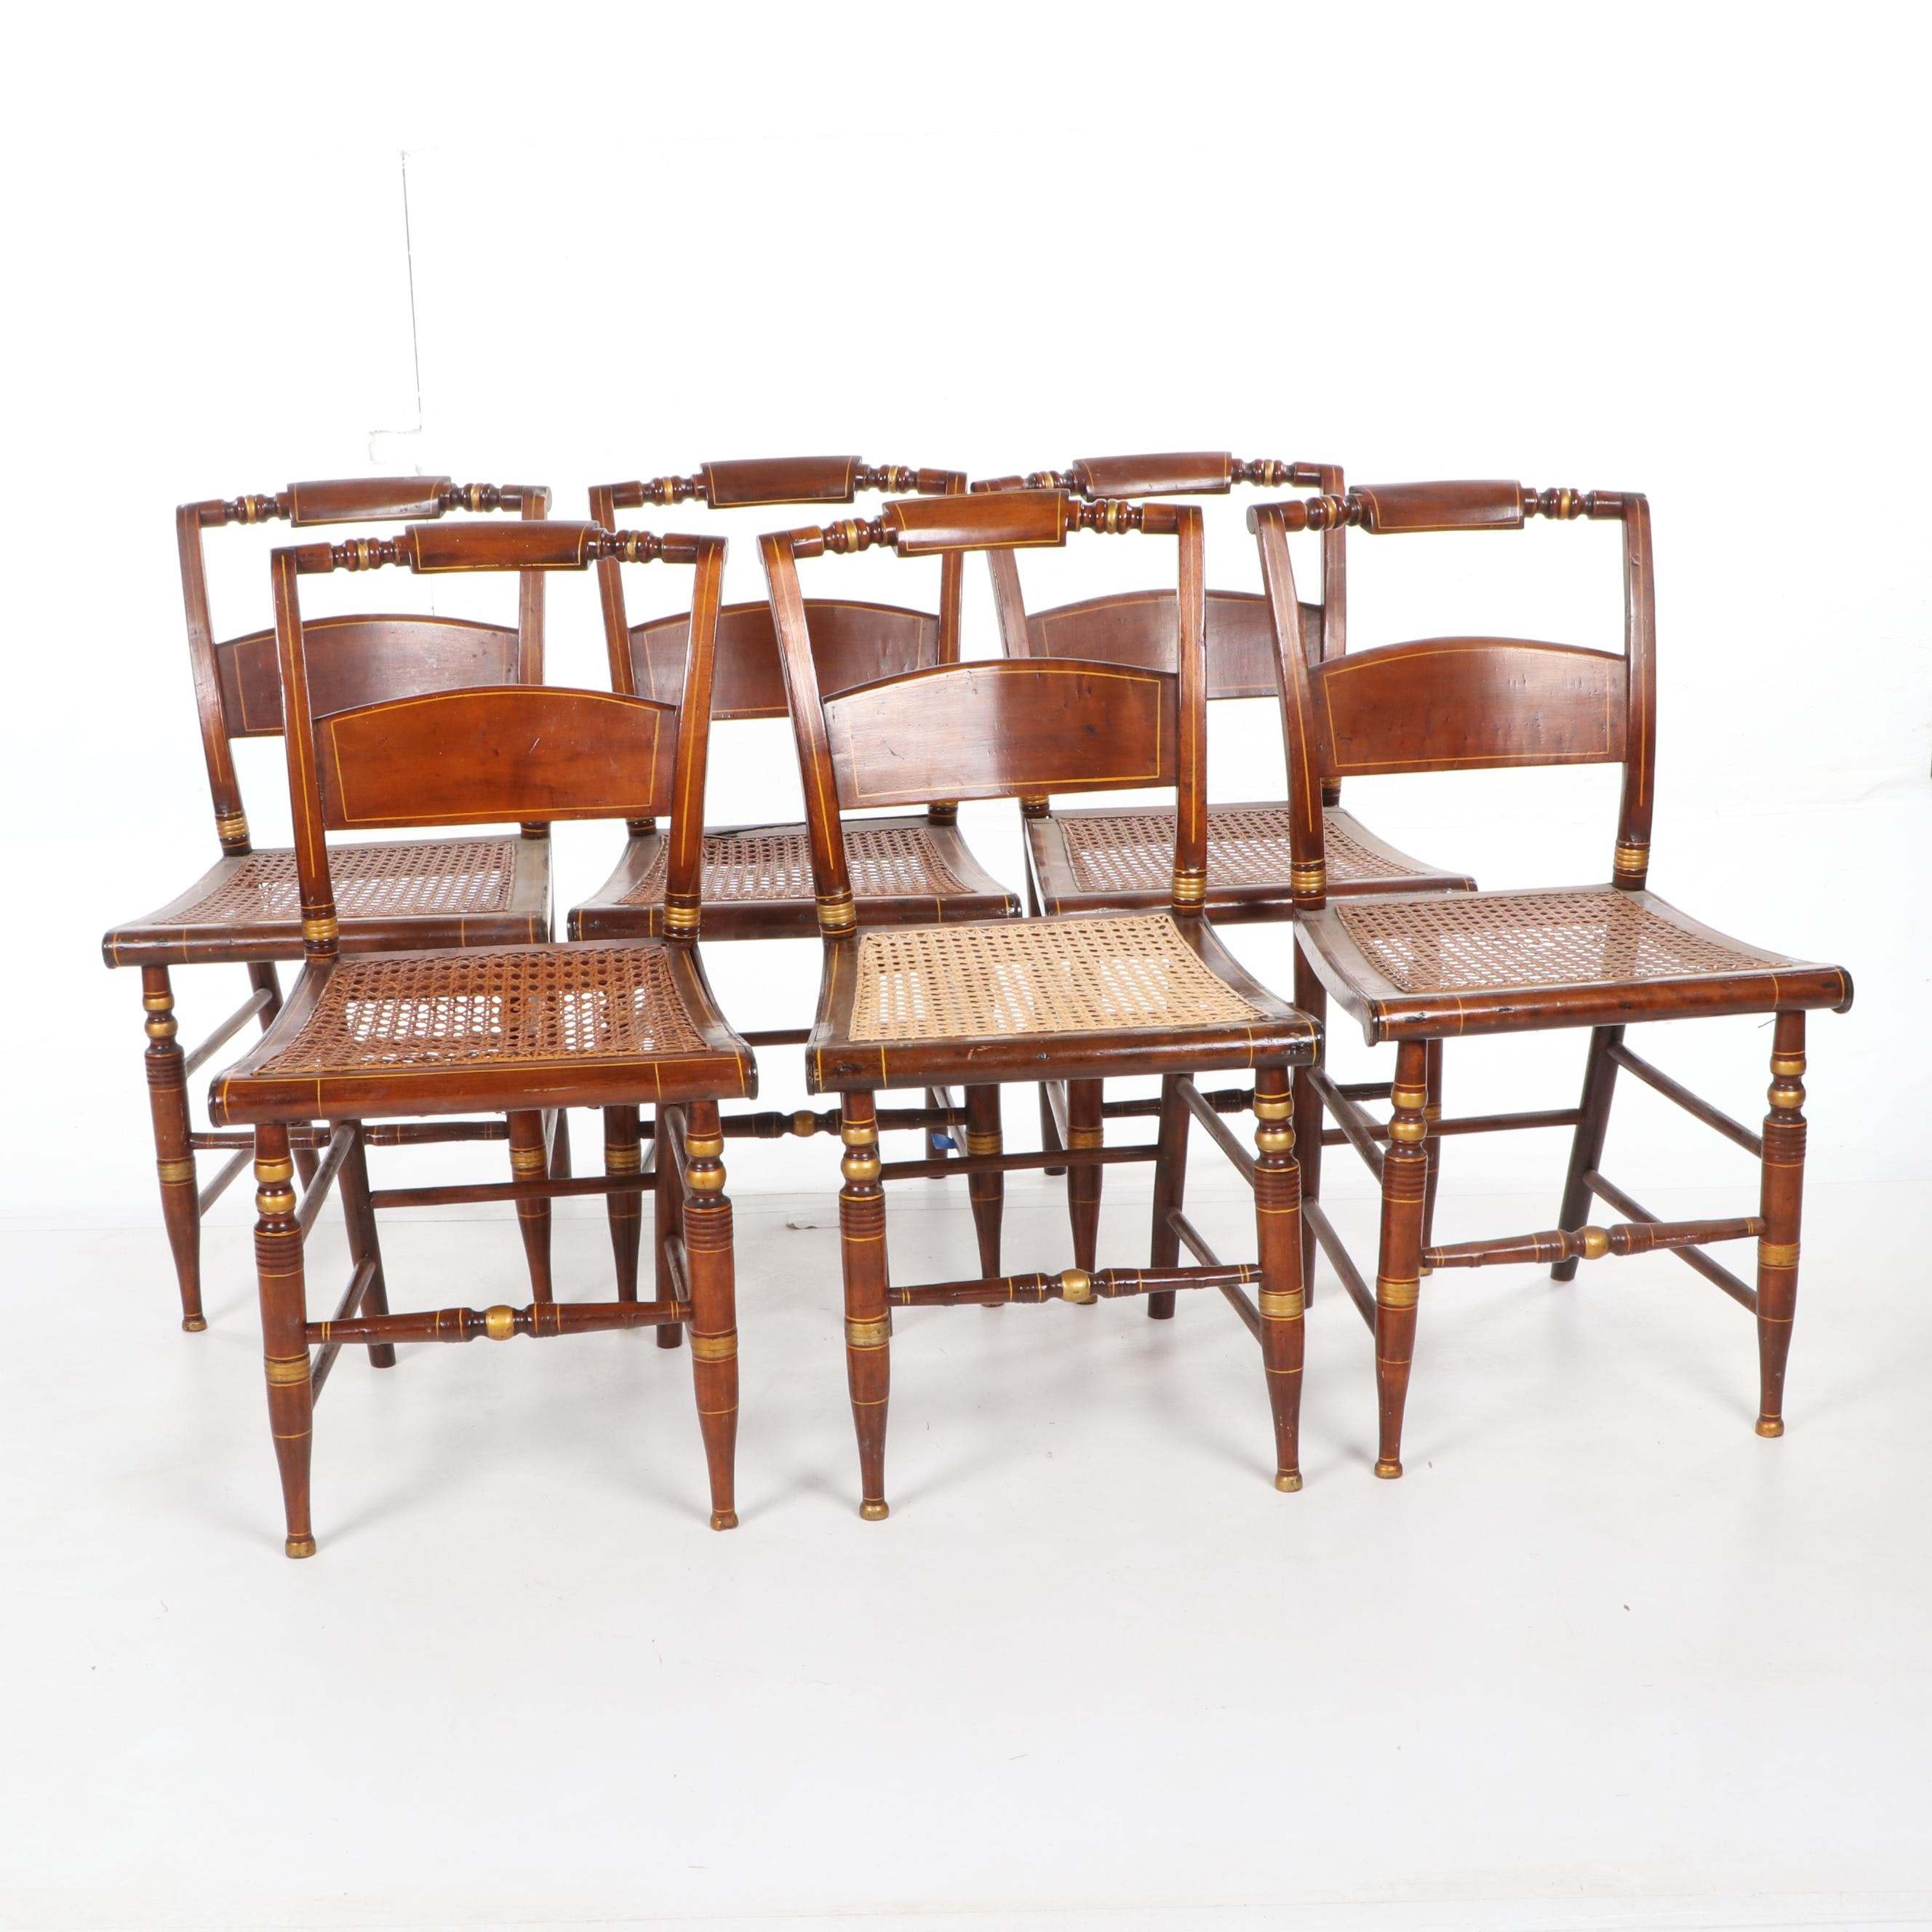 Hitchcock Style Inlaid Walnut Dining Chairs Set, 19th Century